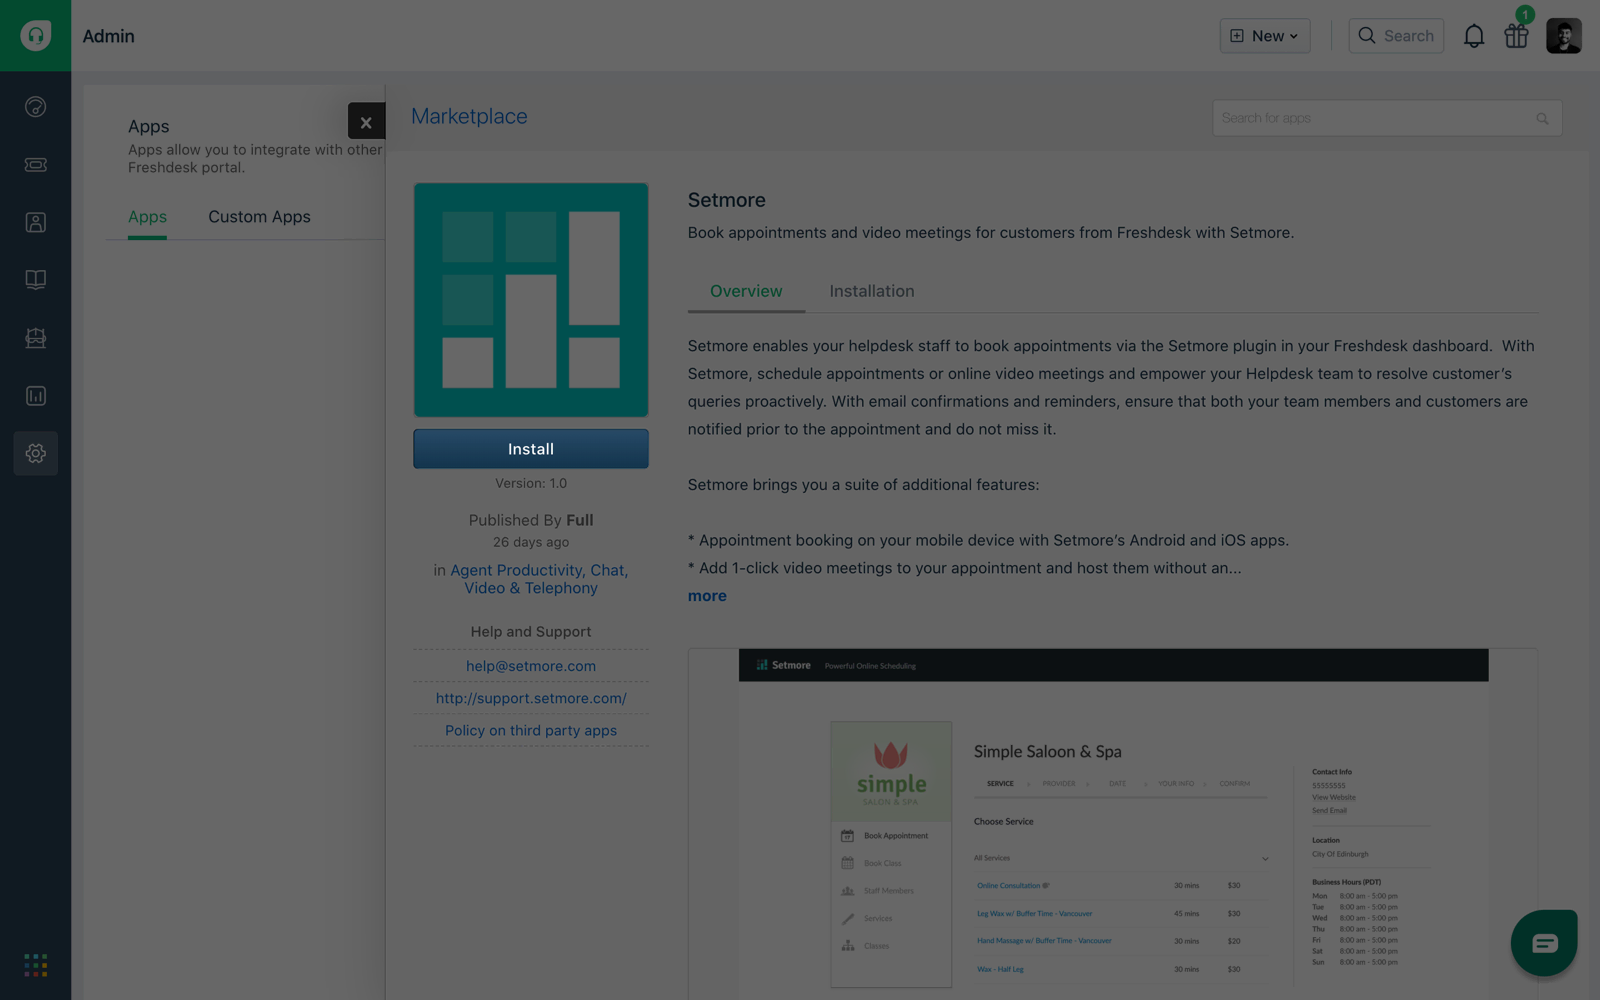 The Install button on the Setmore Plugin in the Freshedesk marketplace